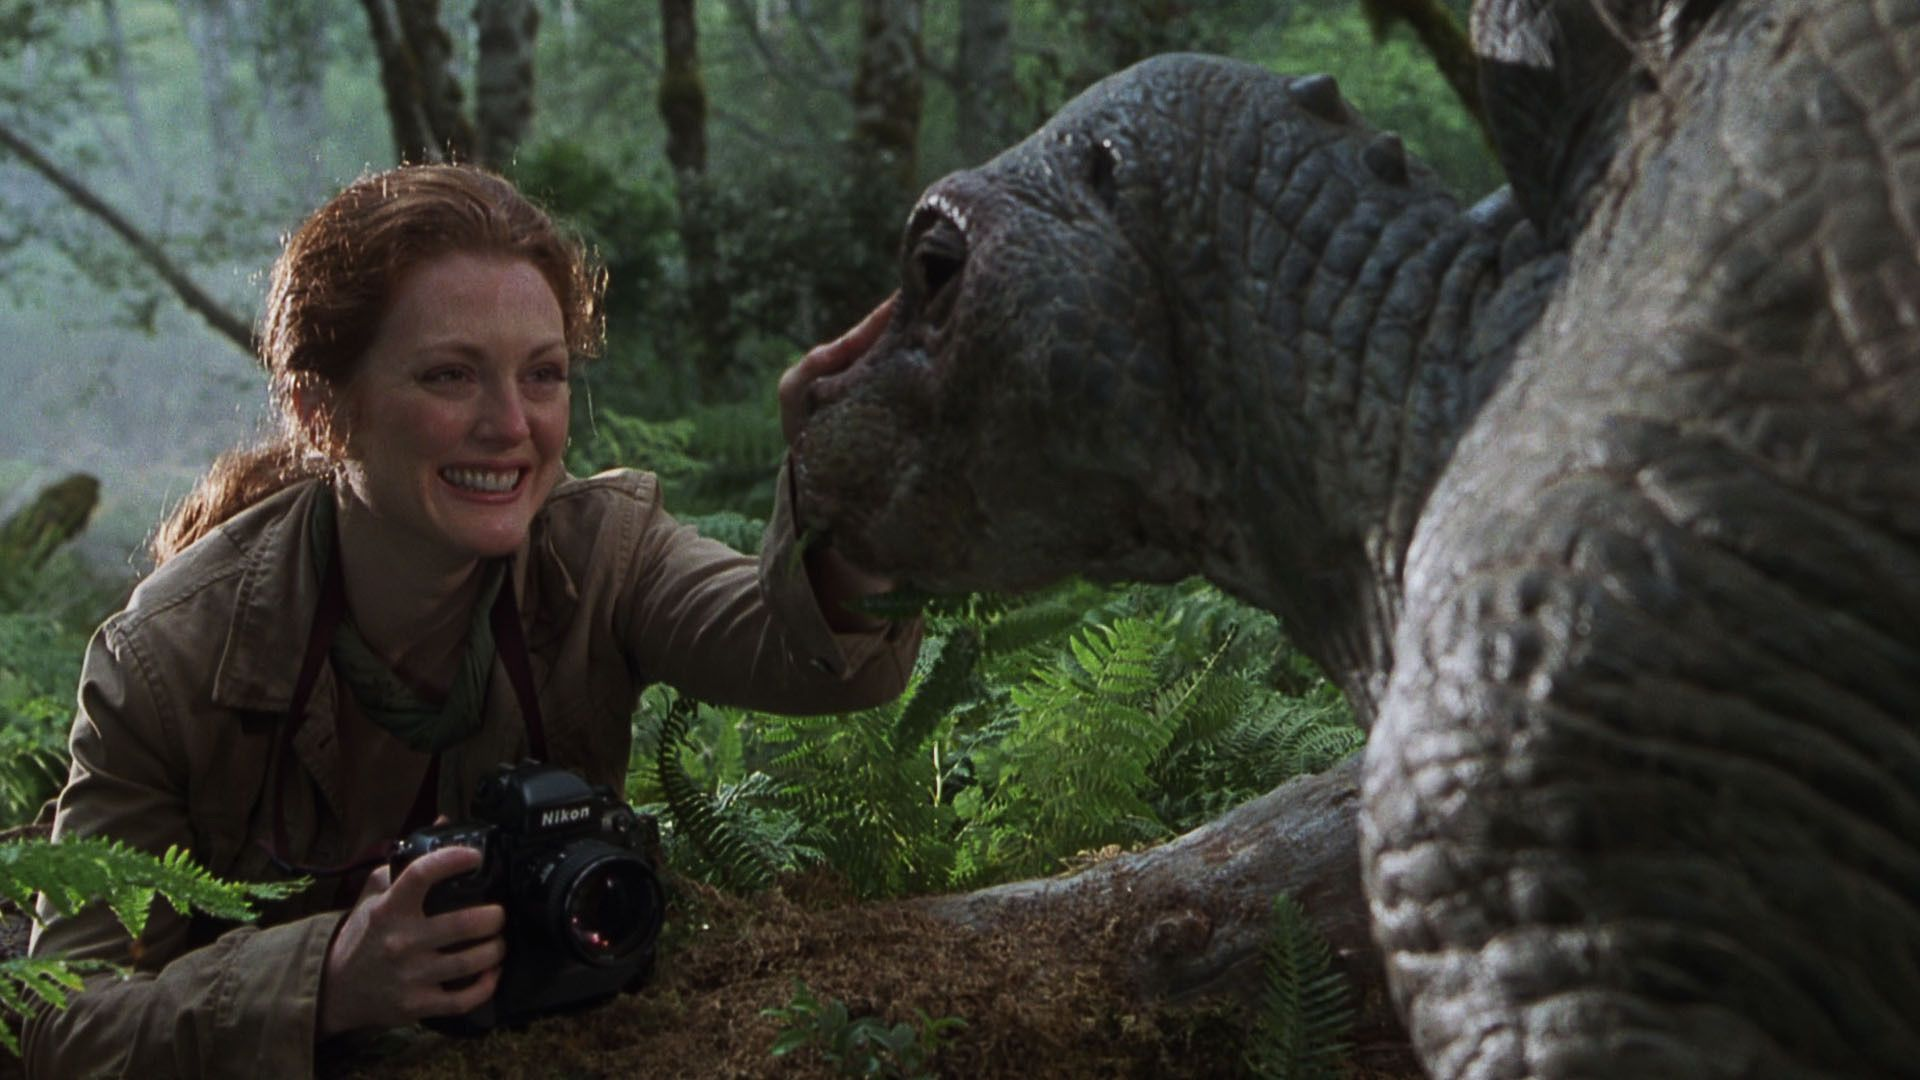 jurassic park cinematography